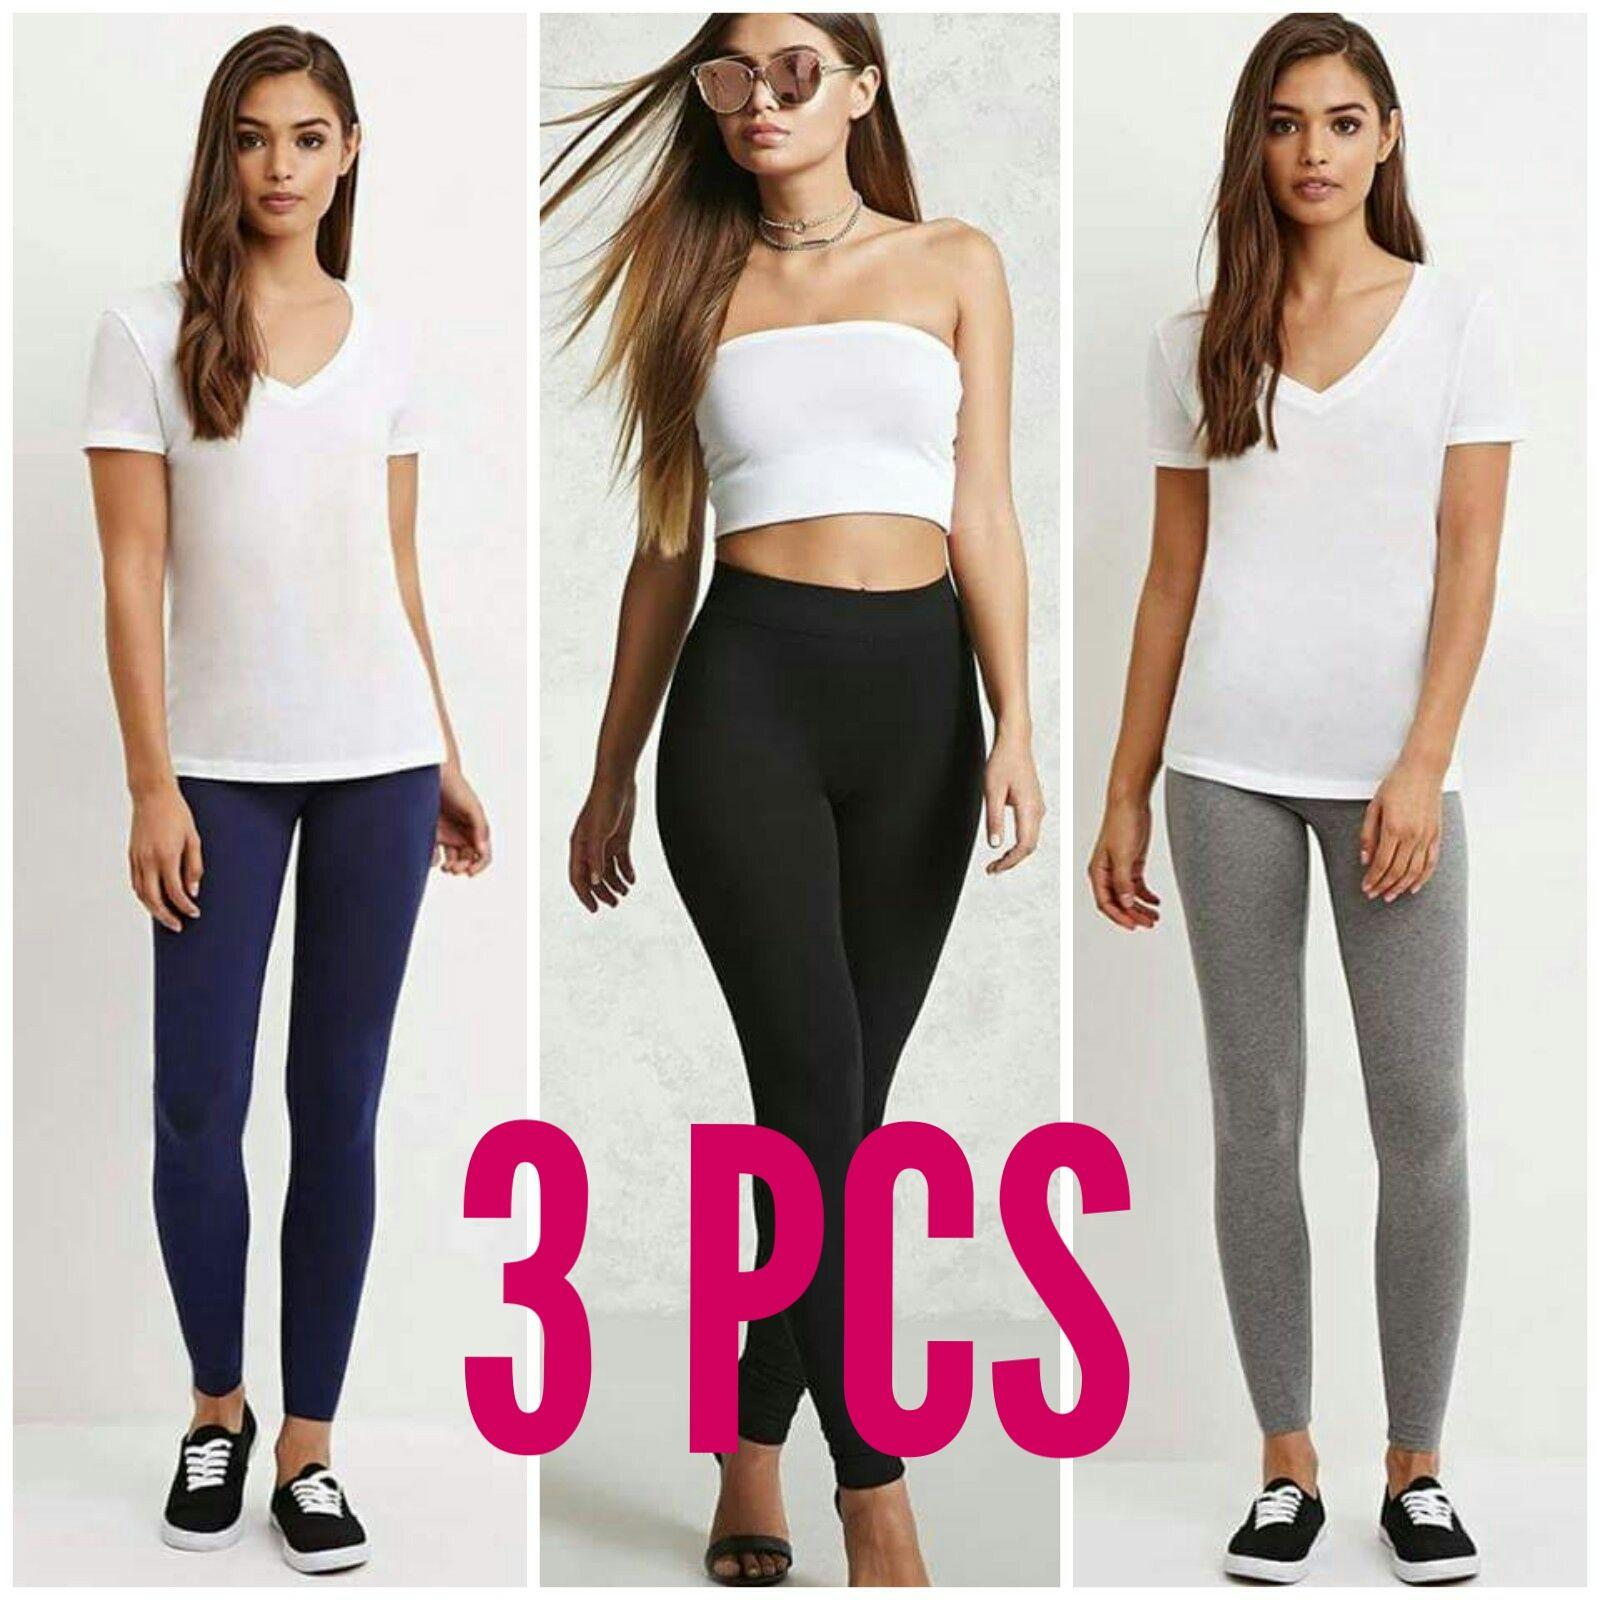 Womens Clothes For Sale Women Online Brands Prices Outfit Girl 10 Korea Set Of 3 Classic Cotton Leggings Overruns